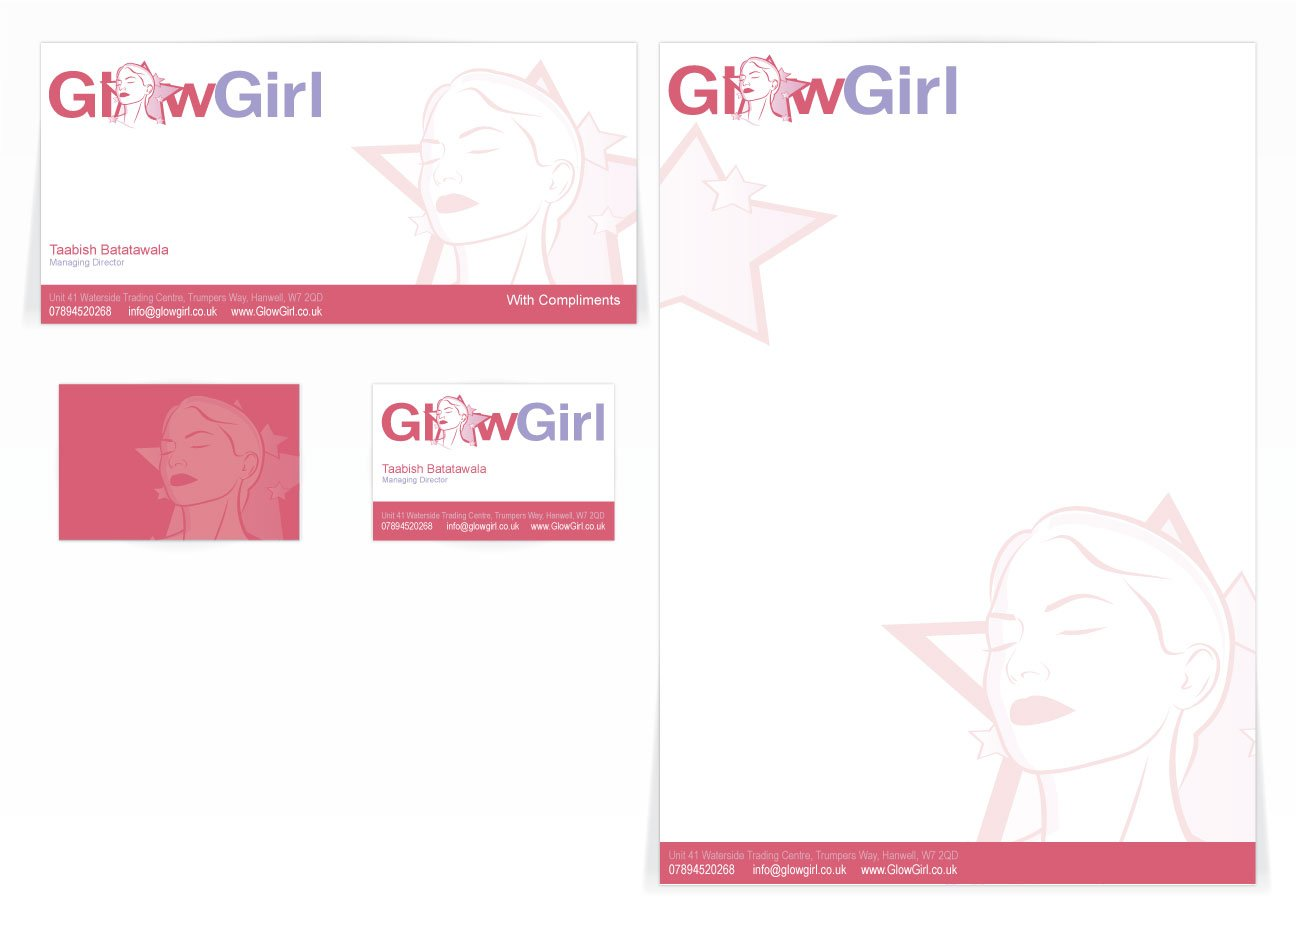 A compliment slip, letterhead and front and back business card design for Glow Girl. Designed by am:pm graphics.